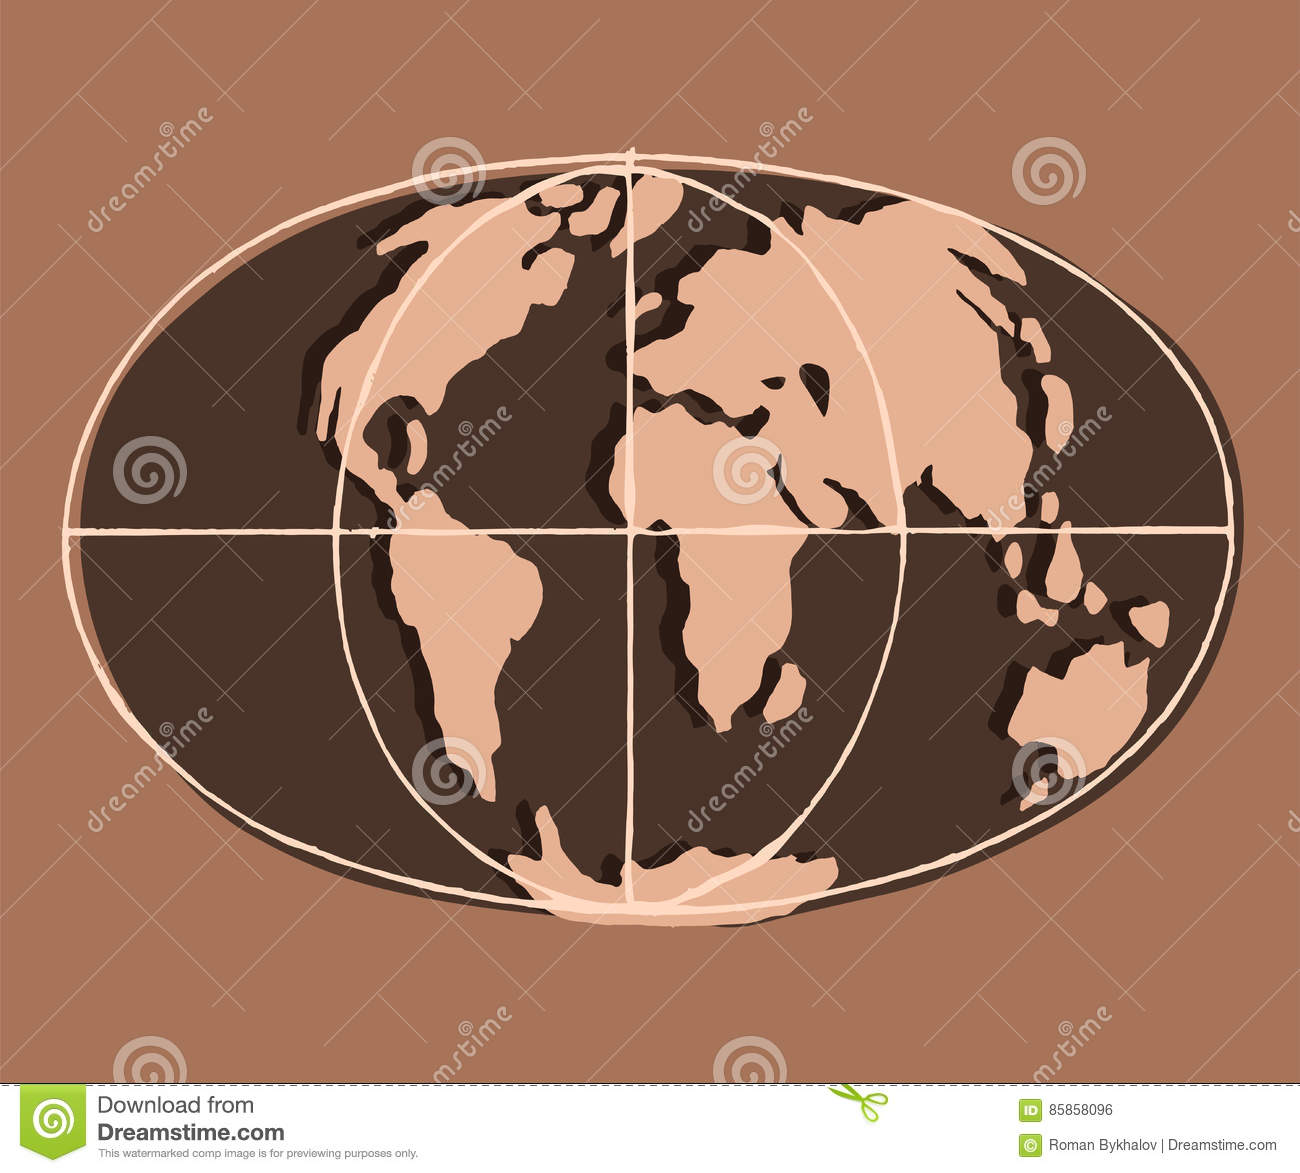 Flat Earth Map Download.Flat Earth Brown Clay Stock Vector Illustration Of Background